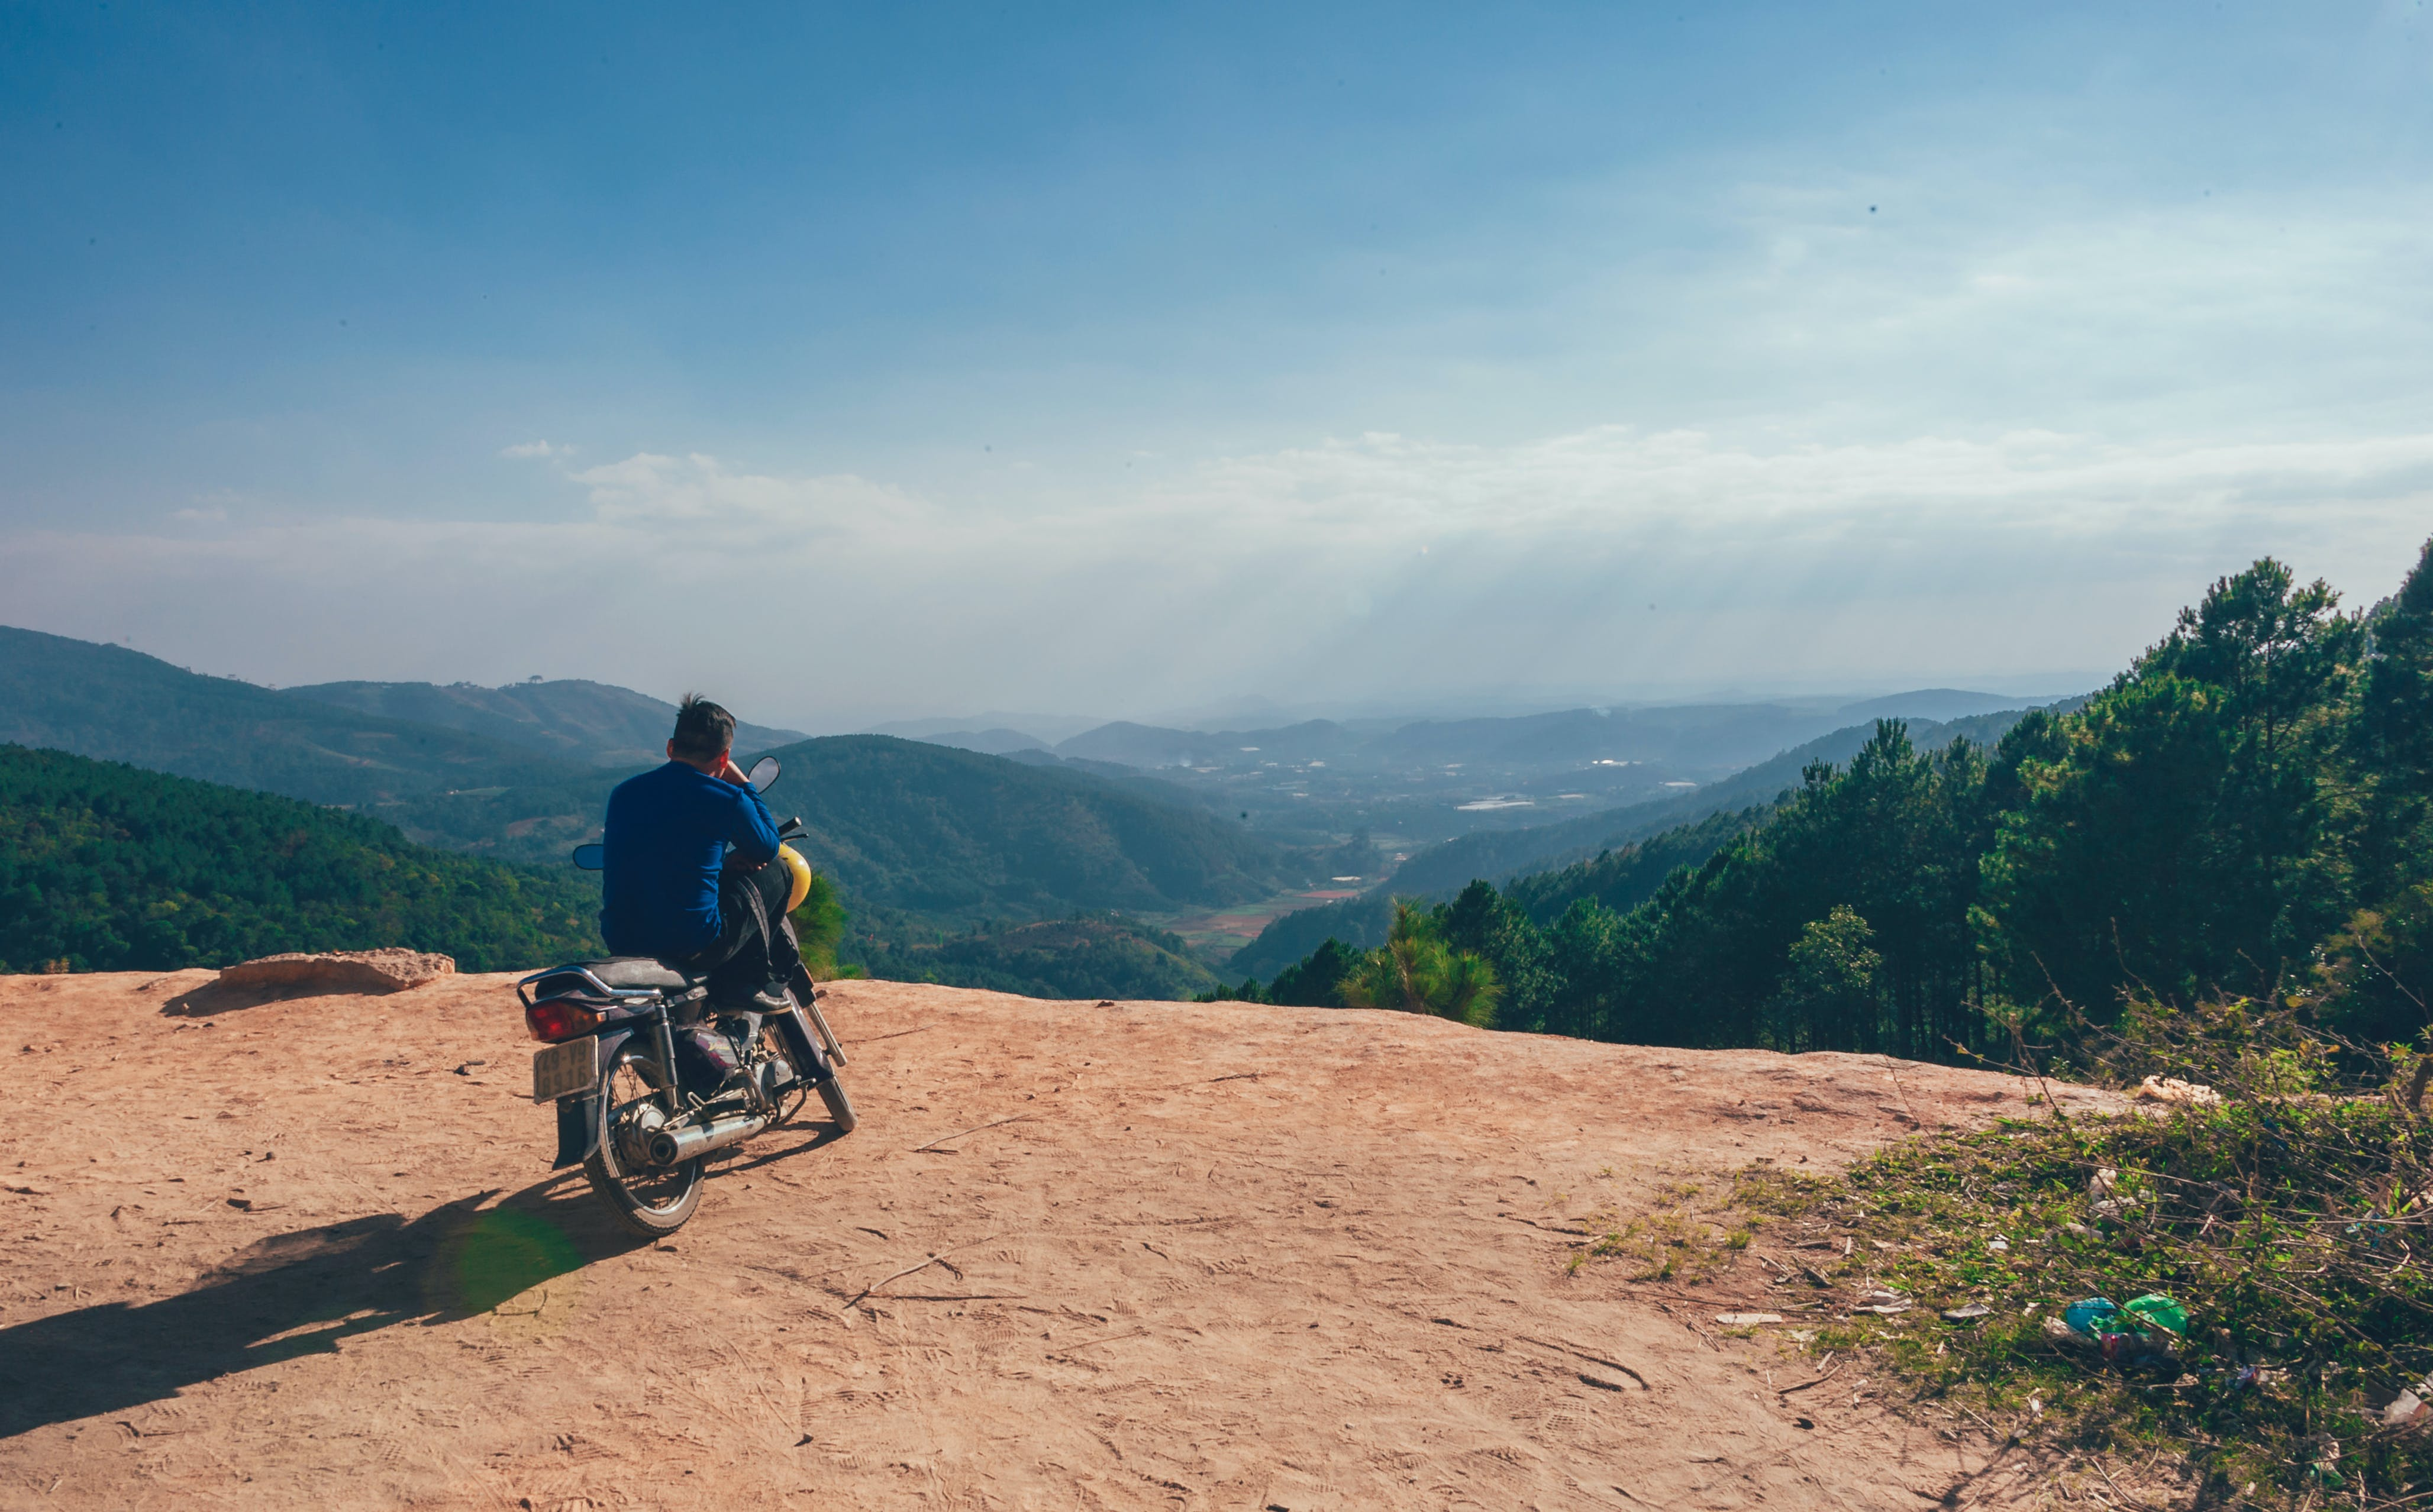 Man Sitting On Motorcycle Facing Mountains